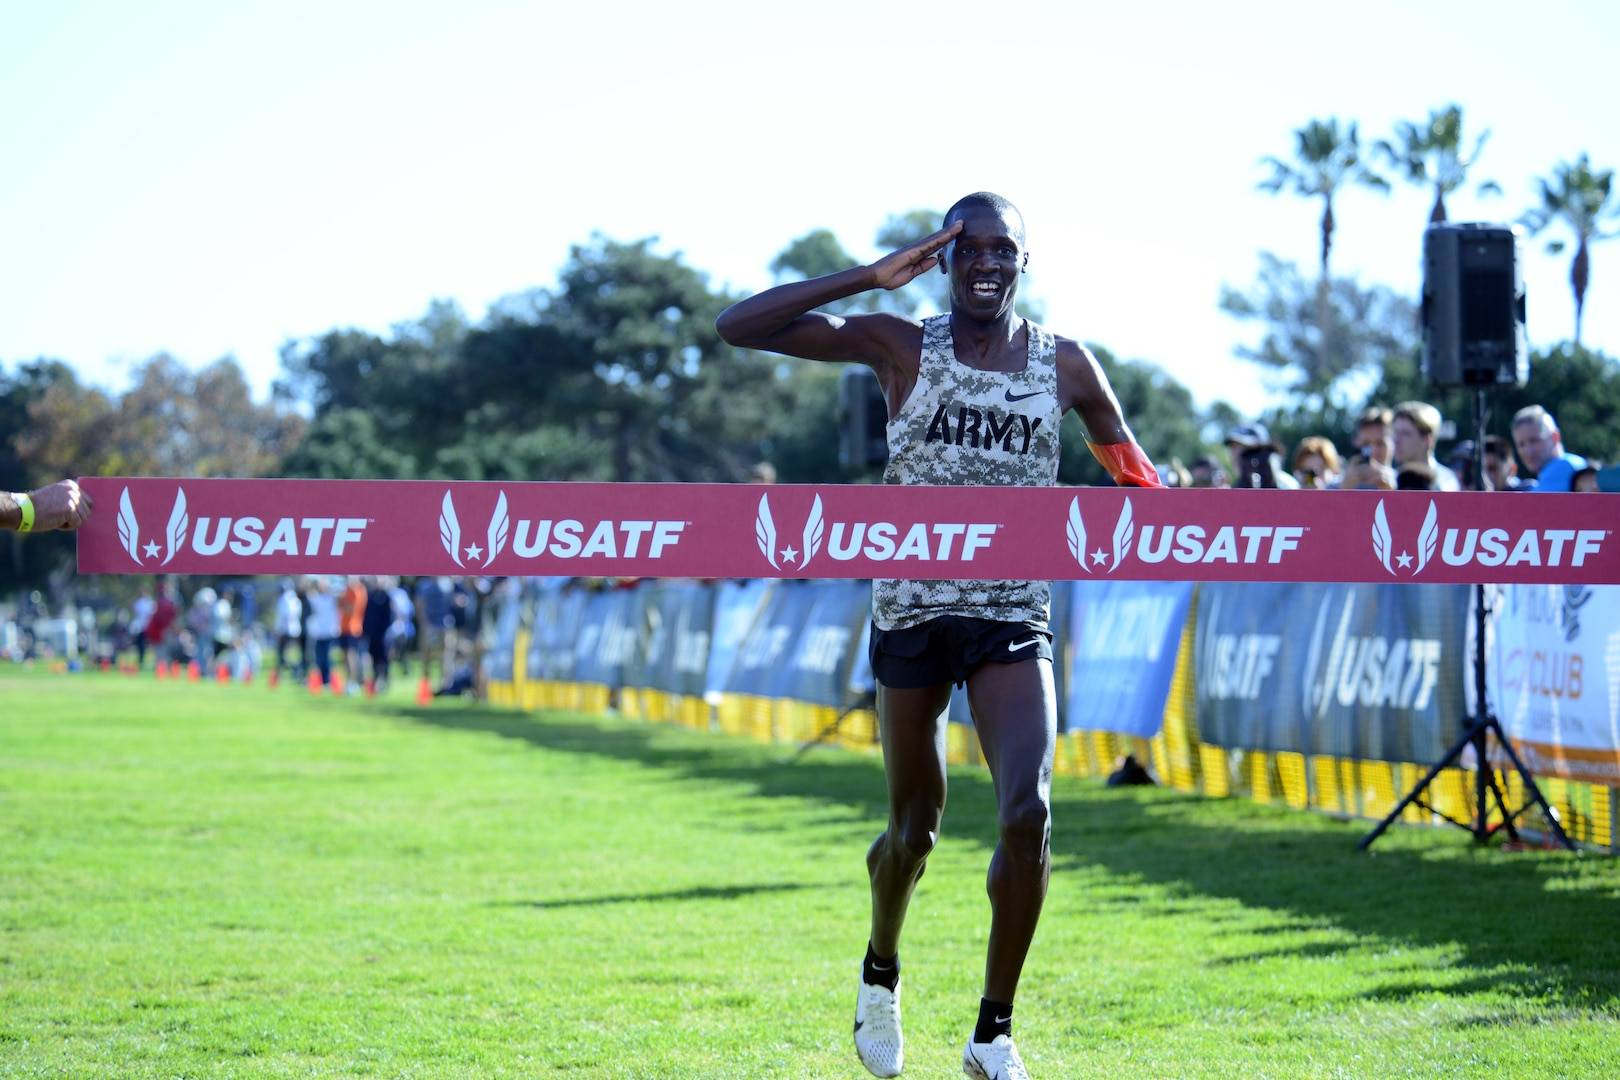 Army Cpl. Anthony Rotich salutes just before crossing the finish line to win the Armed Forces Cross Country Championship, run in conjunction with the USA Track and Field senior men 10K race at Mission Bay Park, San Diego, Calif., Jan. 18, 2020. Rotich took gold for both with a time of 30:36.